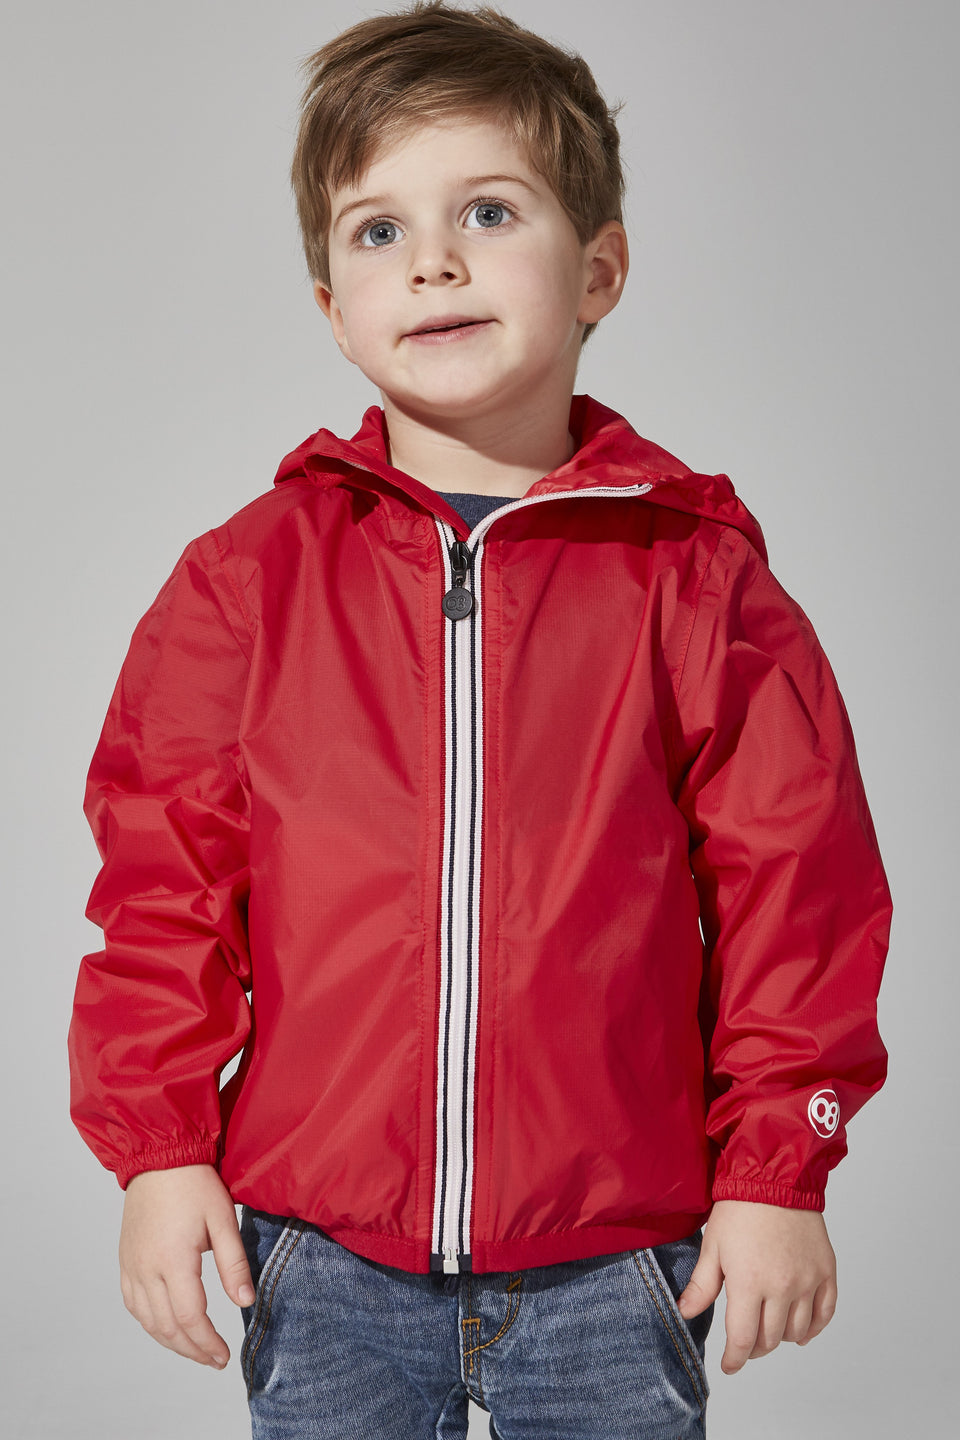 Kids Red Full Zip Packable Jacket - Kids -  O8lifestyle